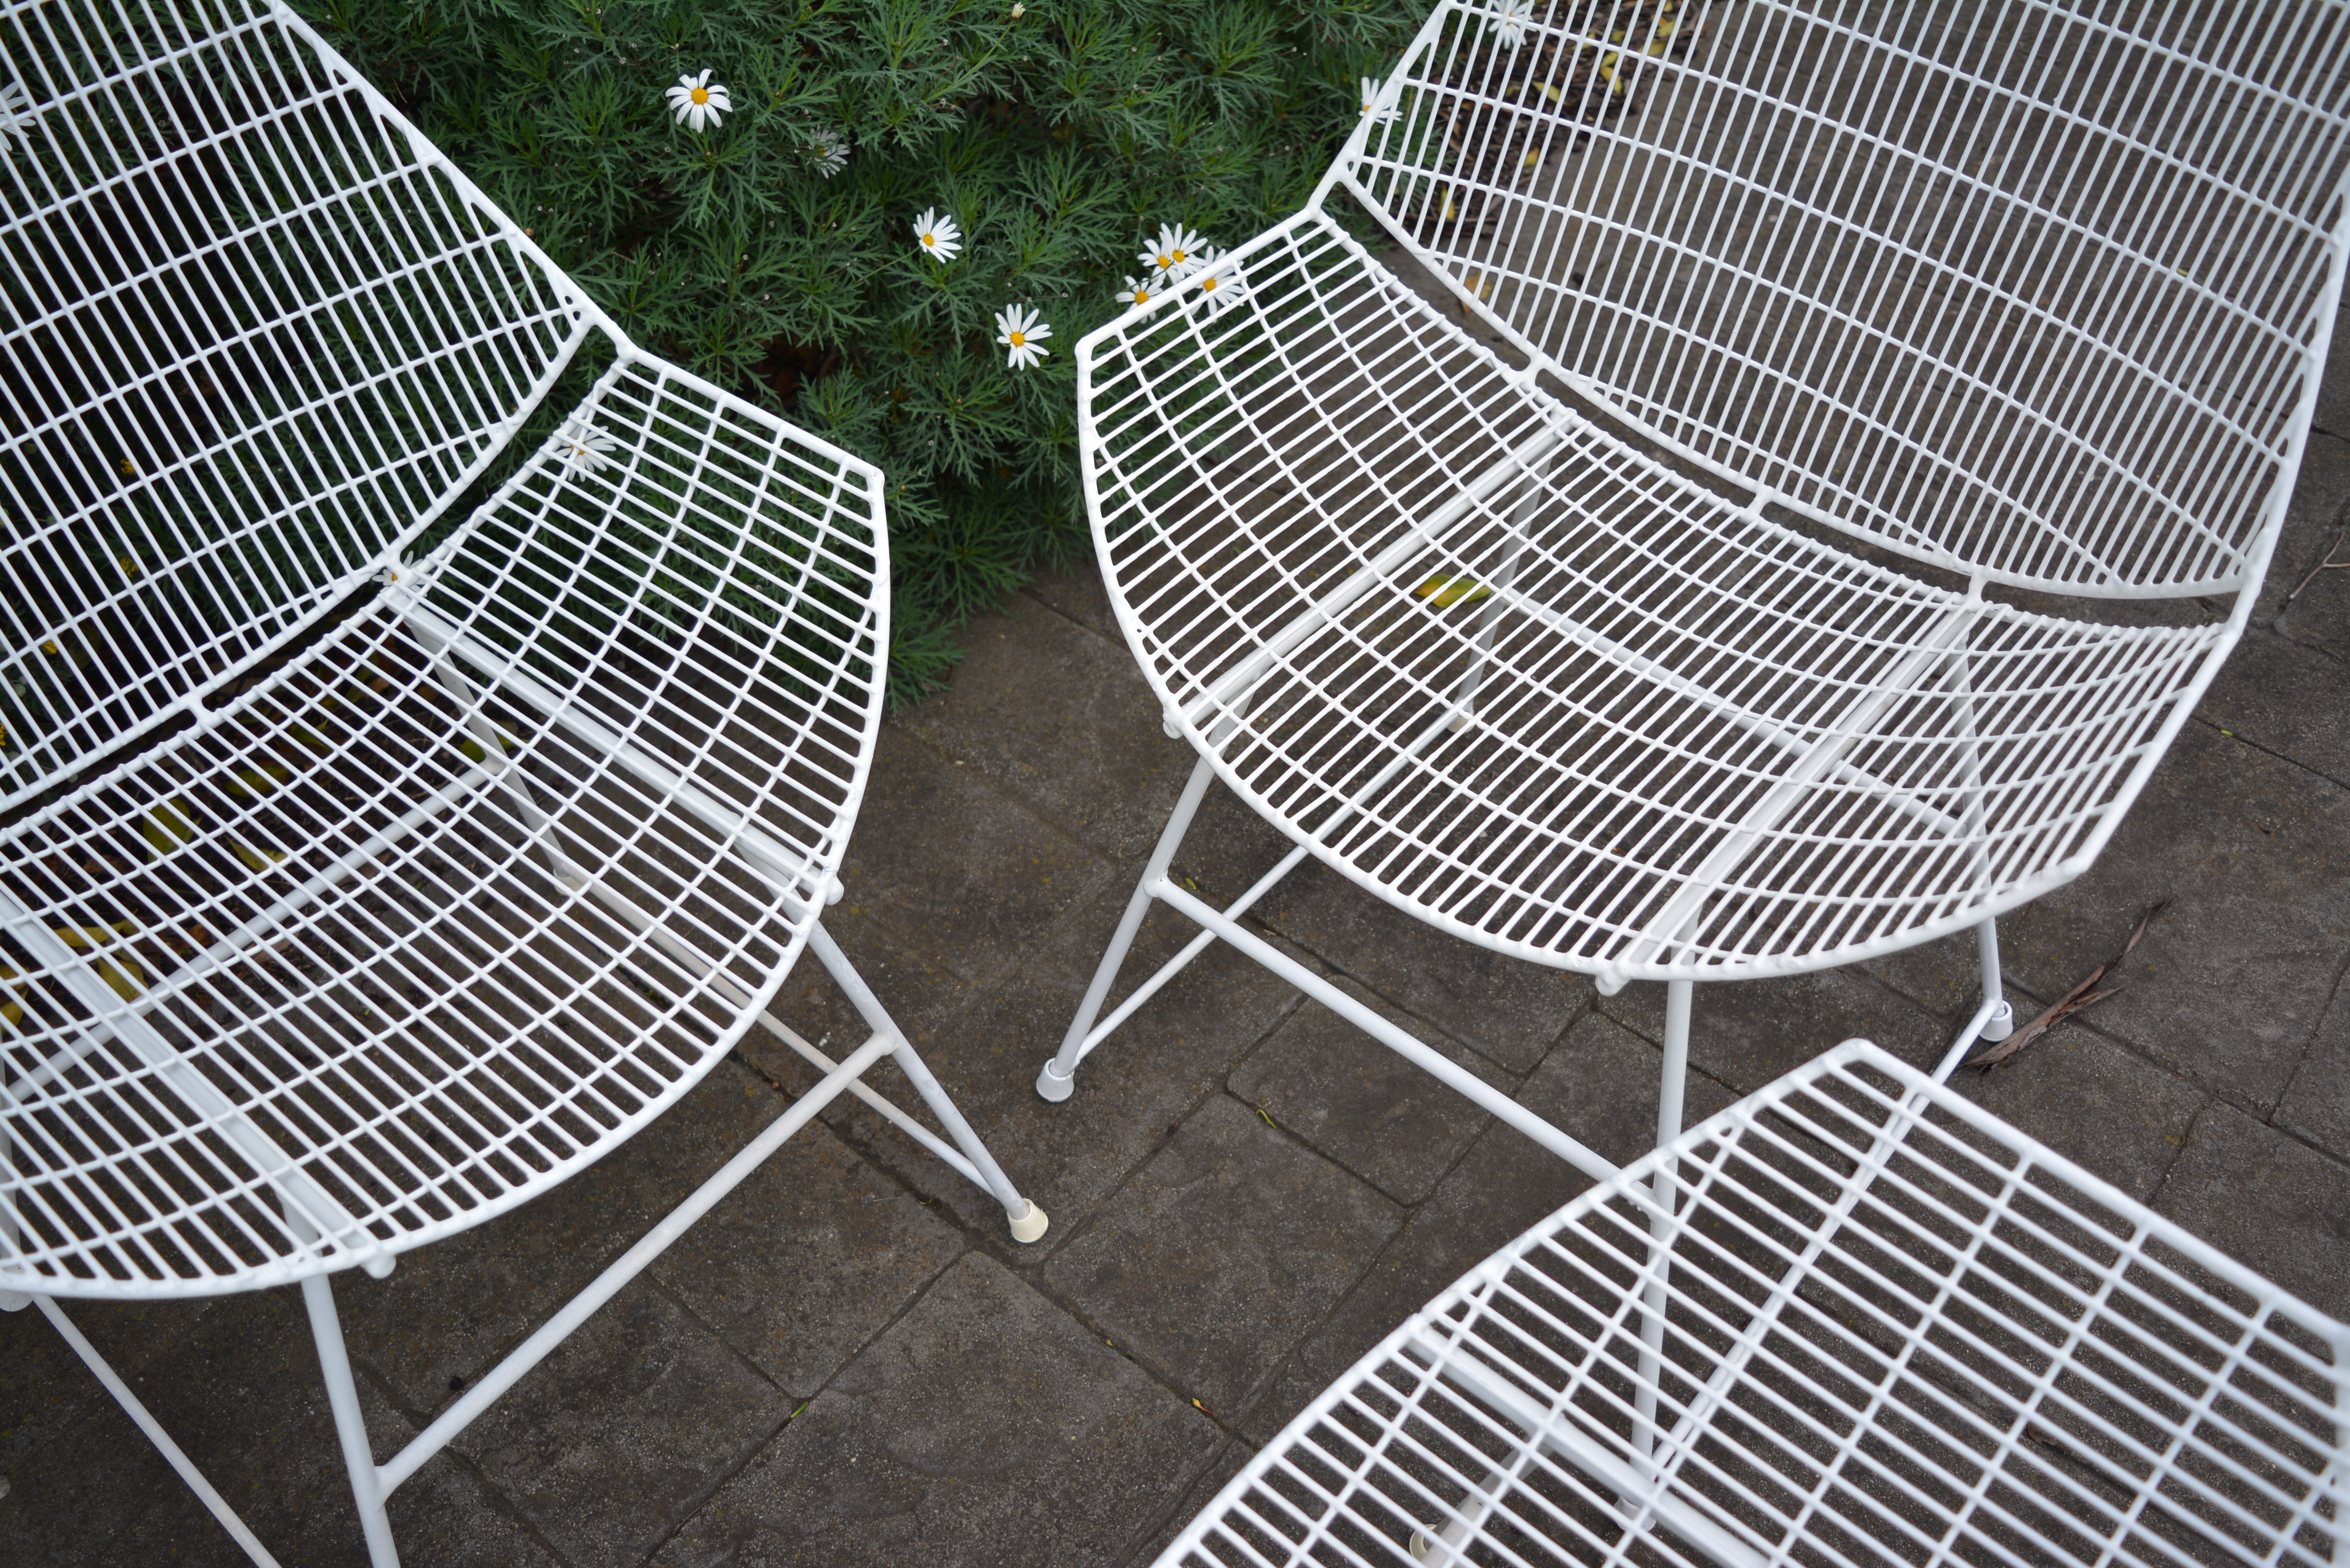 1950 s breotex wire outdoor designer furniture 4 vintage outdoor chairs patio chairs